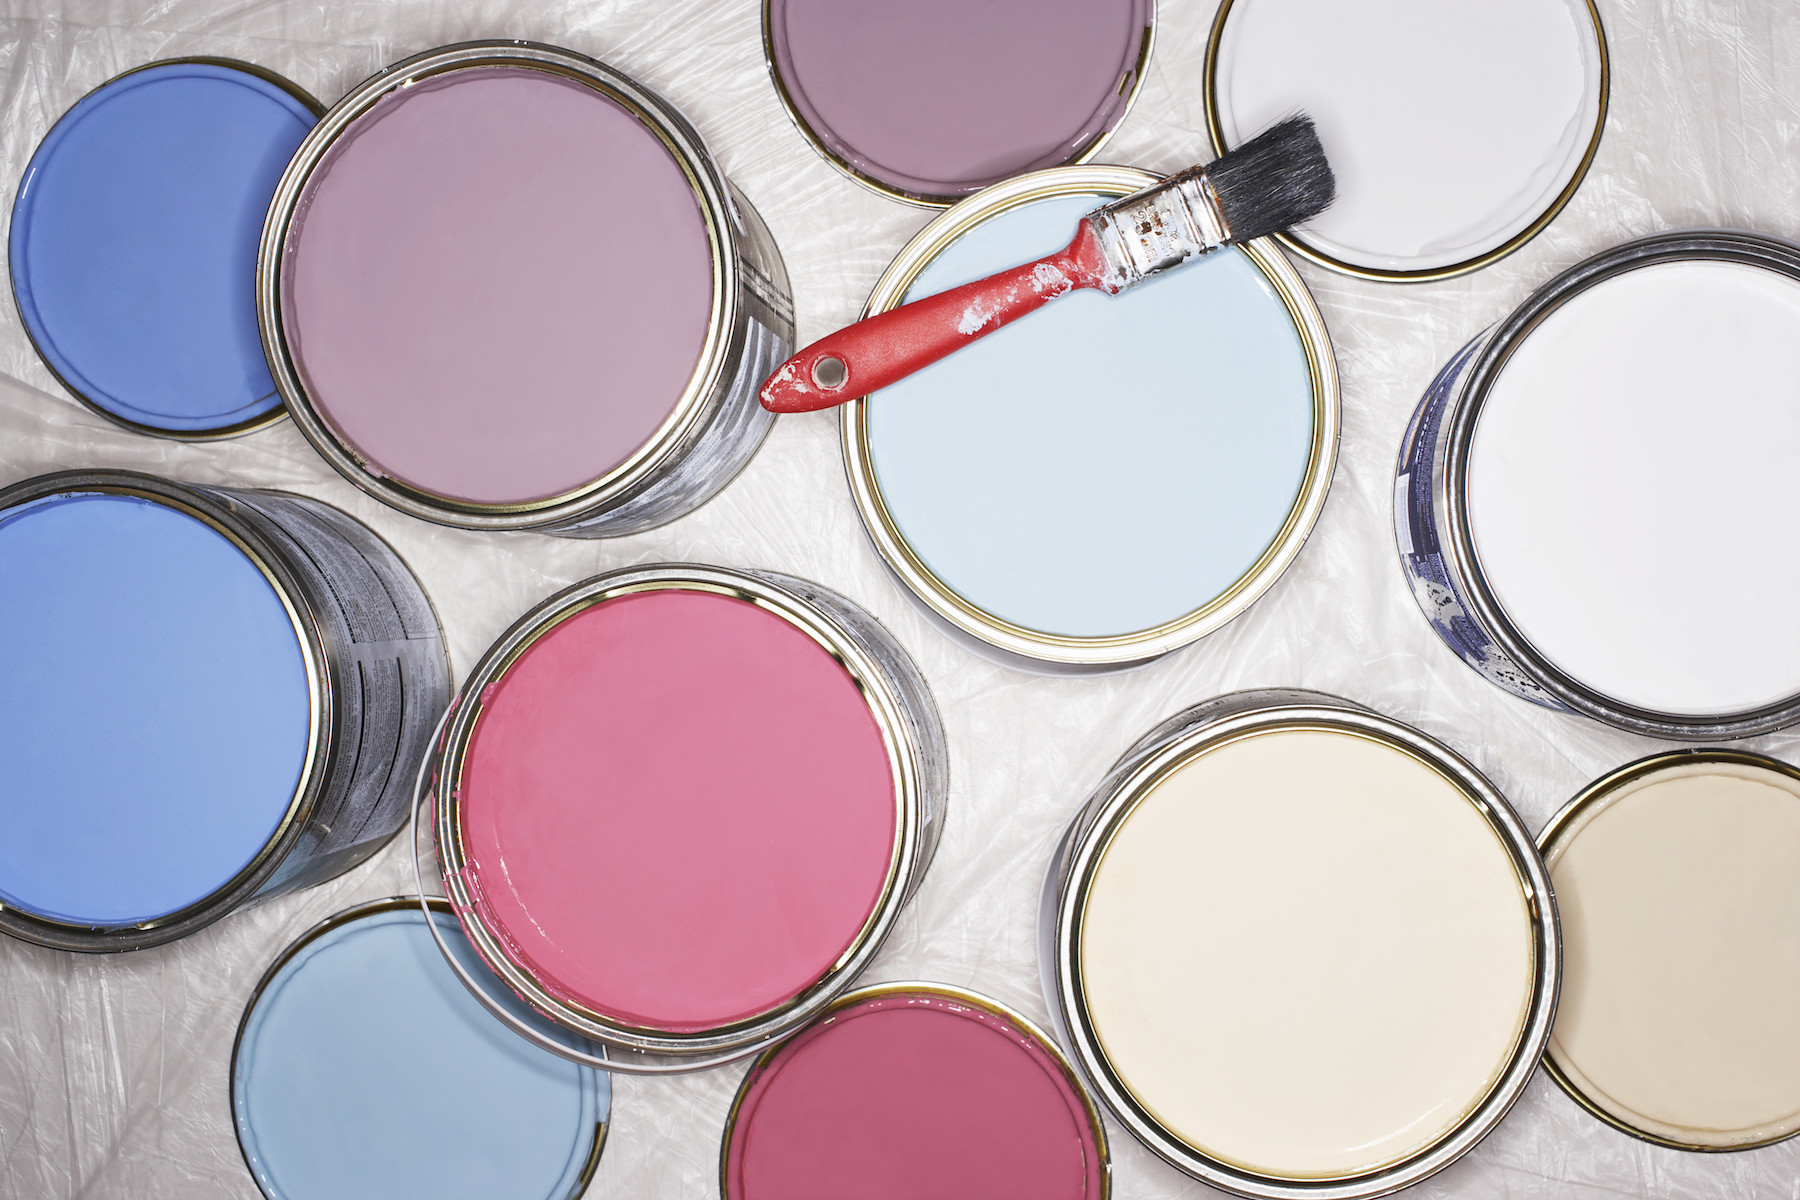 Pantone 2019 Color of the Year, paint cans and brush